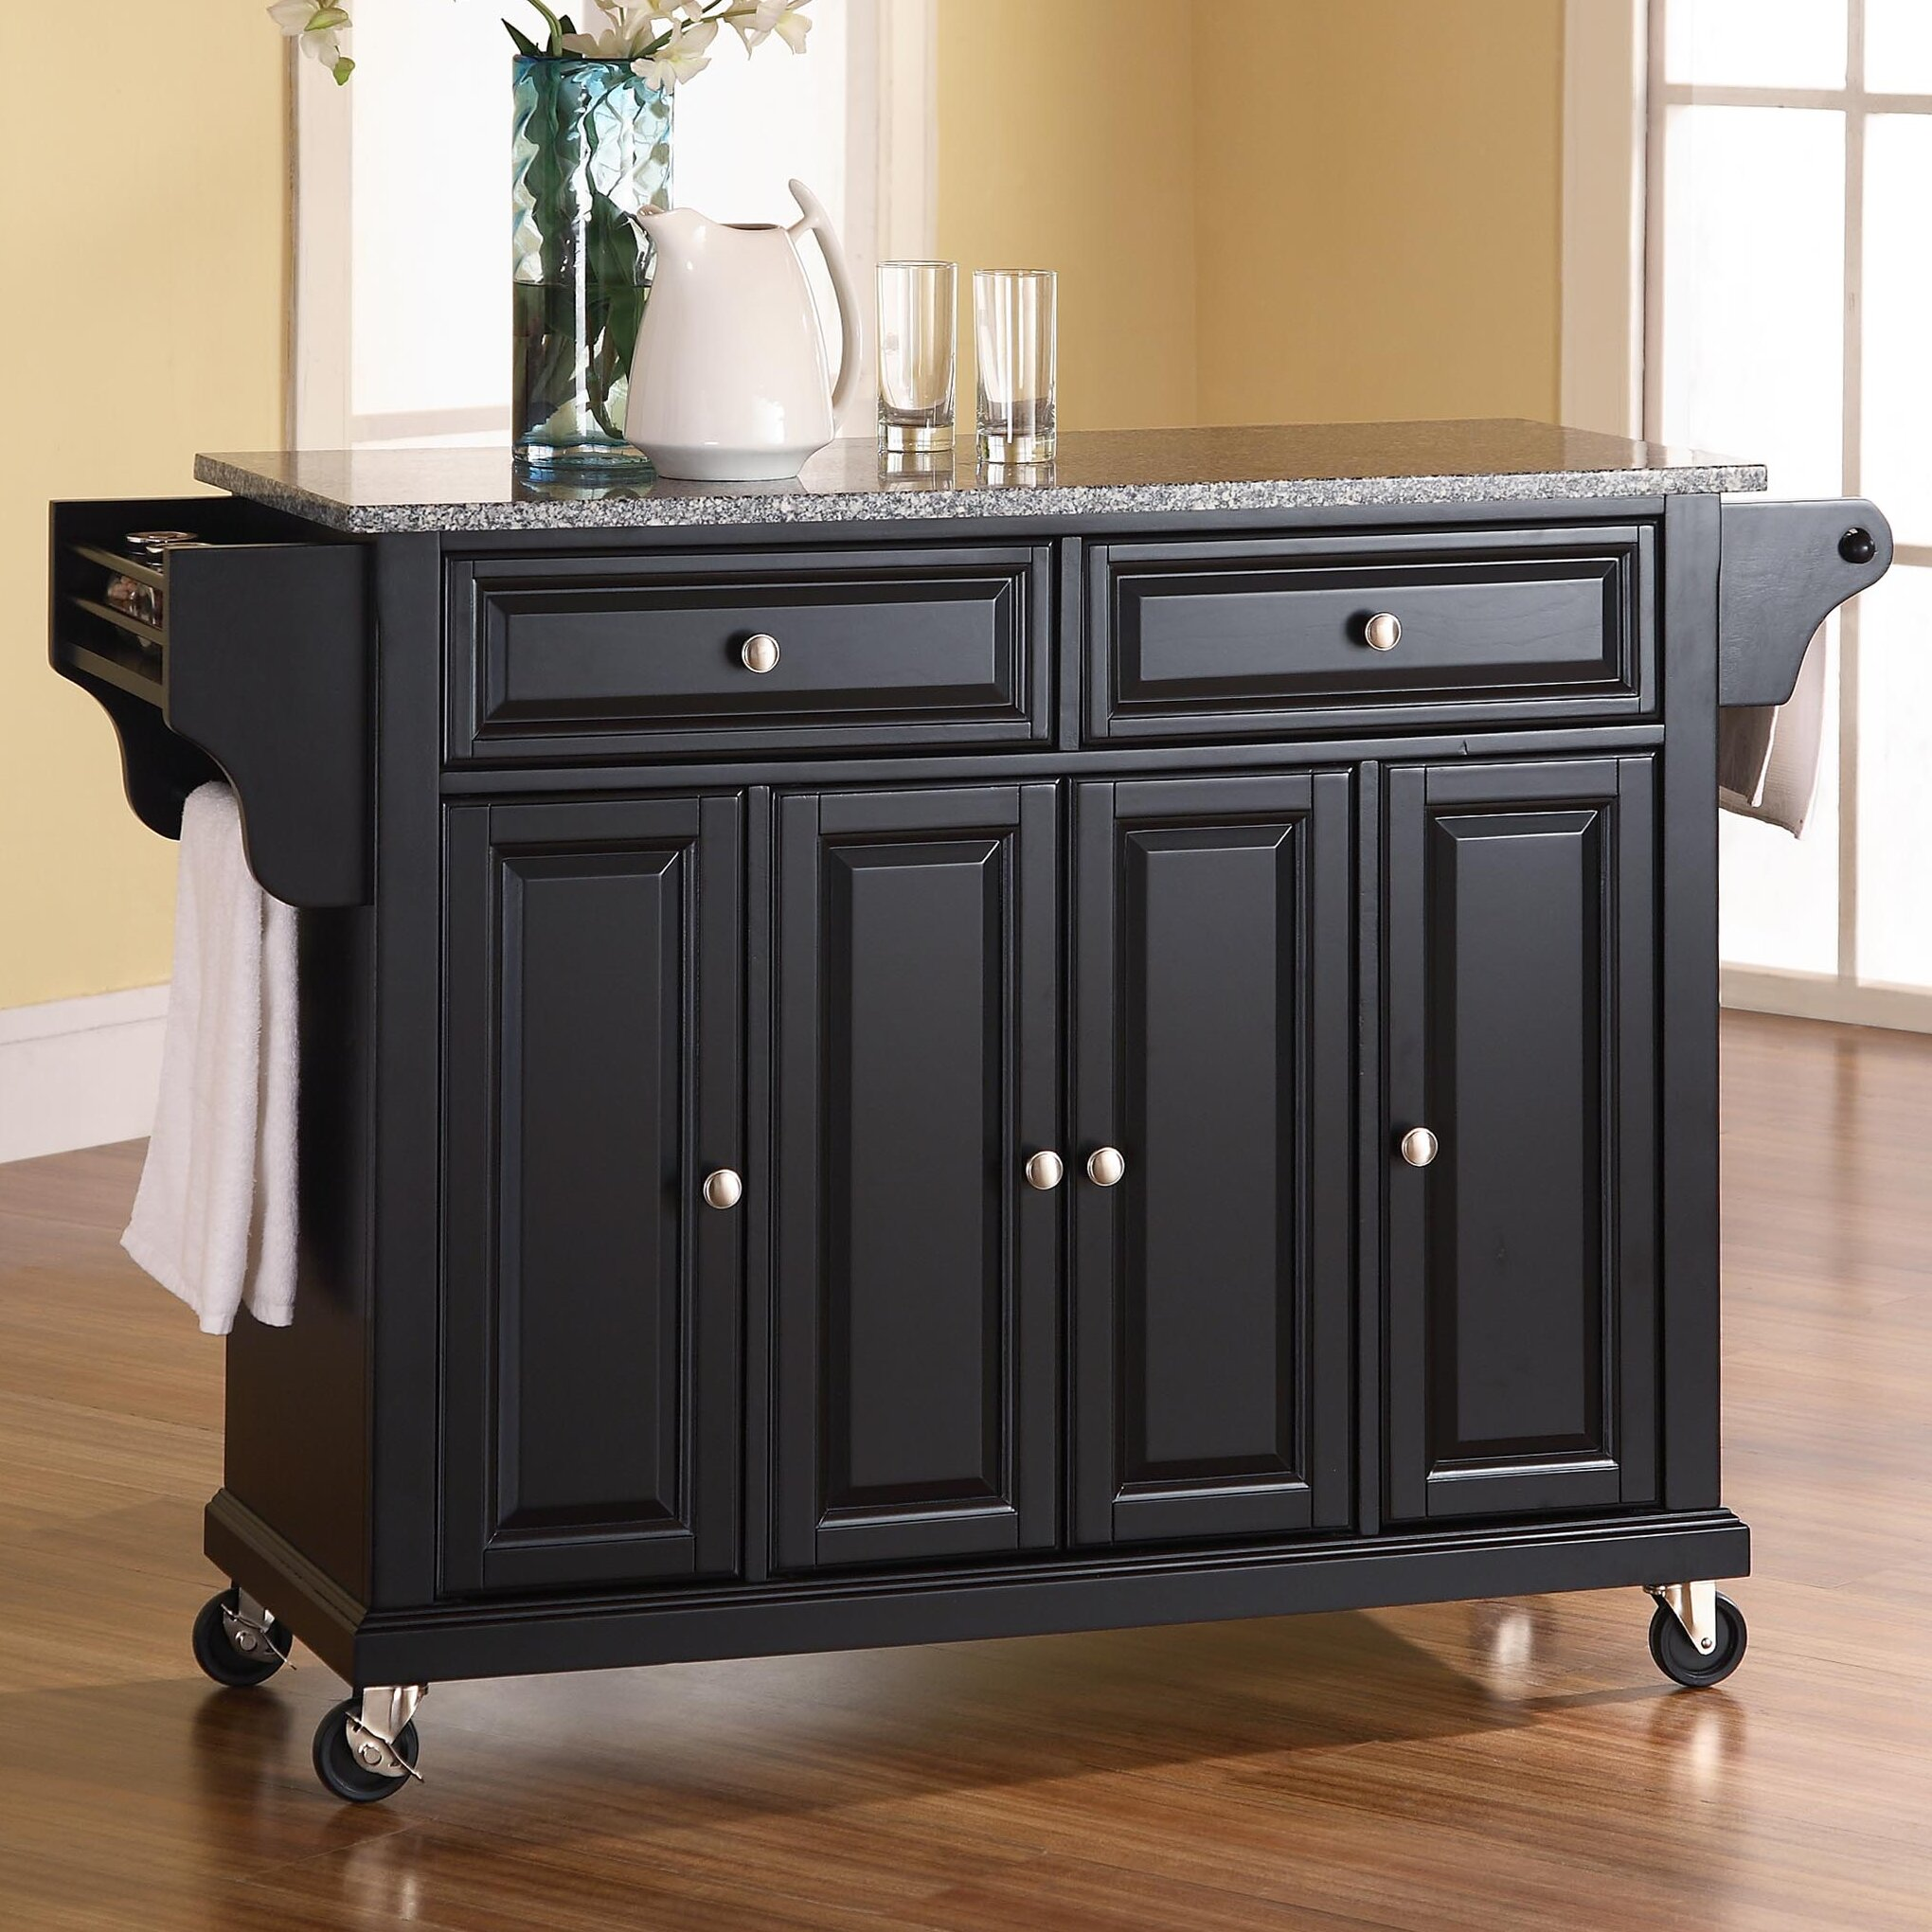 darby home co pottstown kitchen cart/island with granite top, Kitchen design